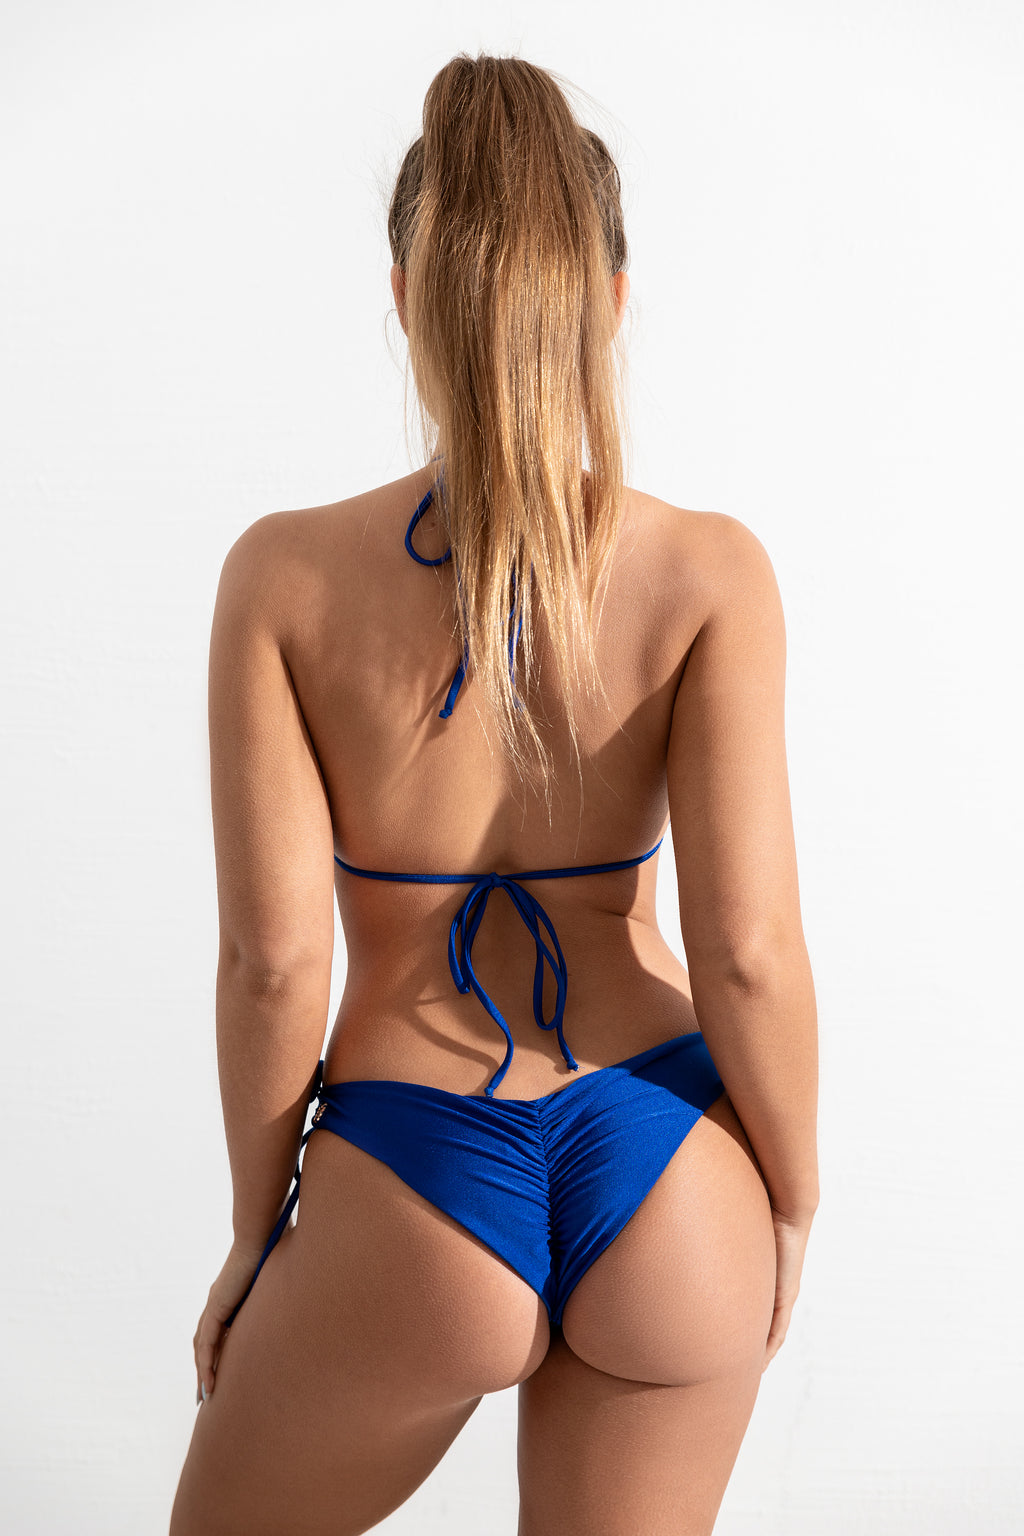 Deep Sea Blue Bondi Top // Malibu Bottom